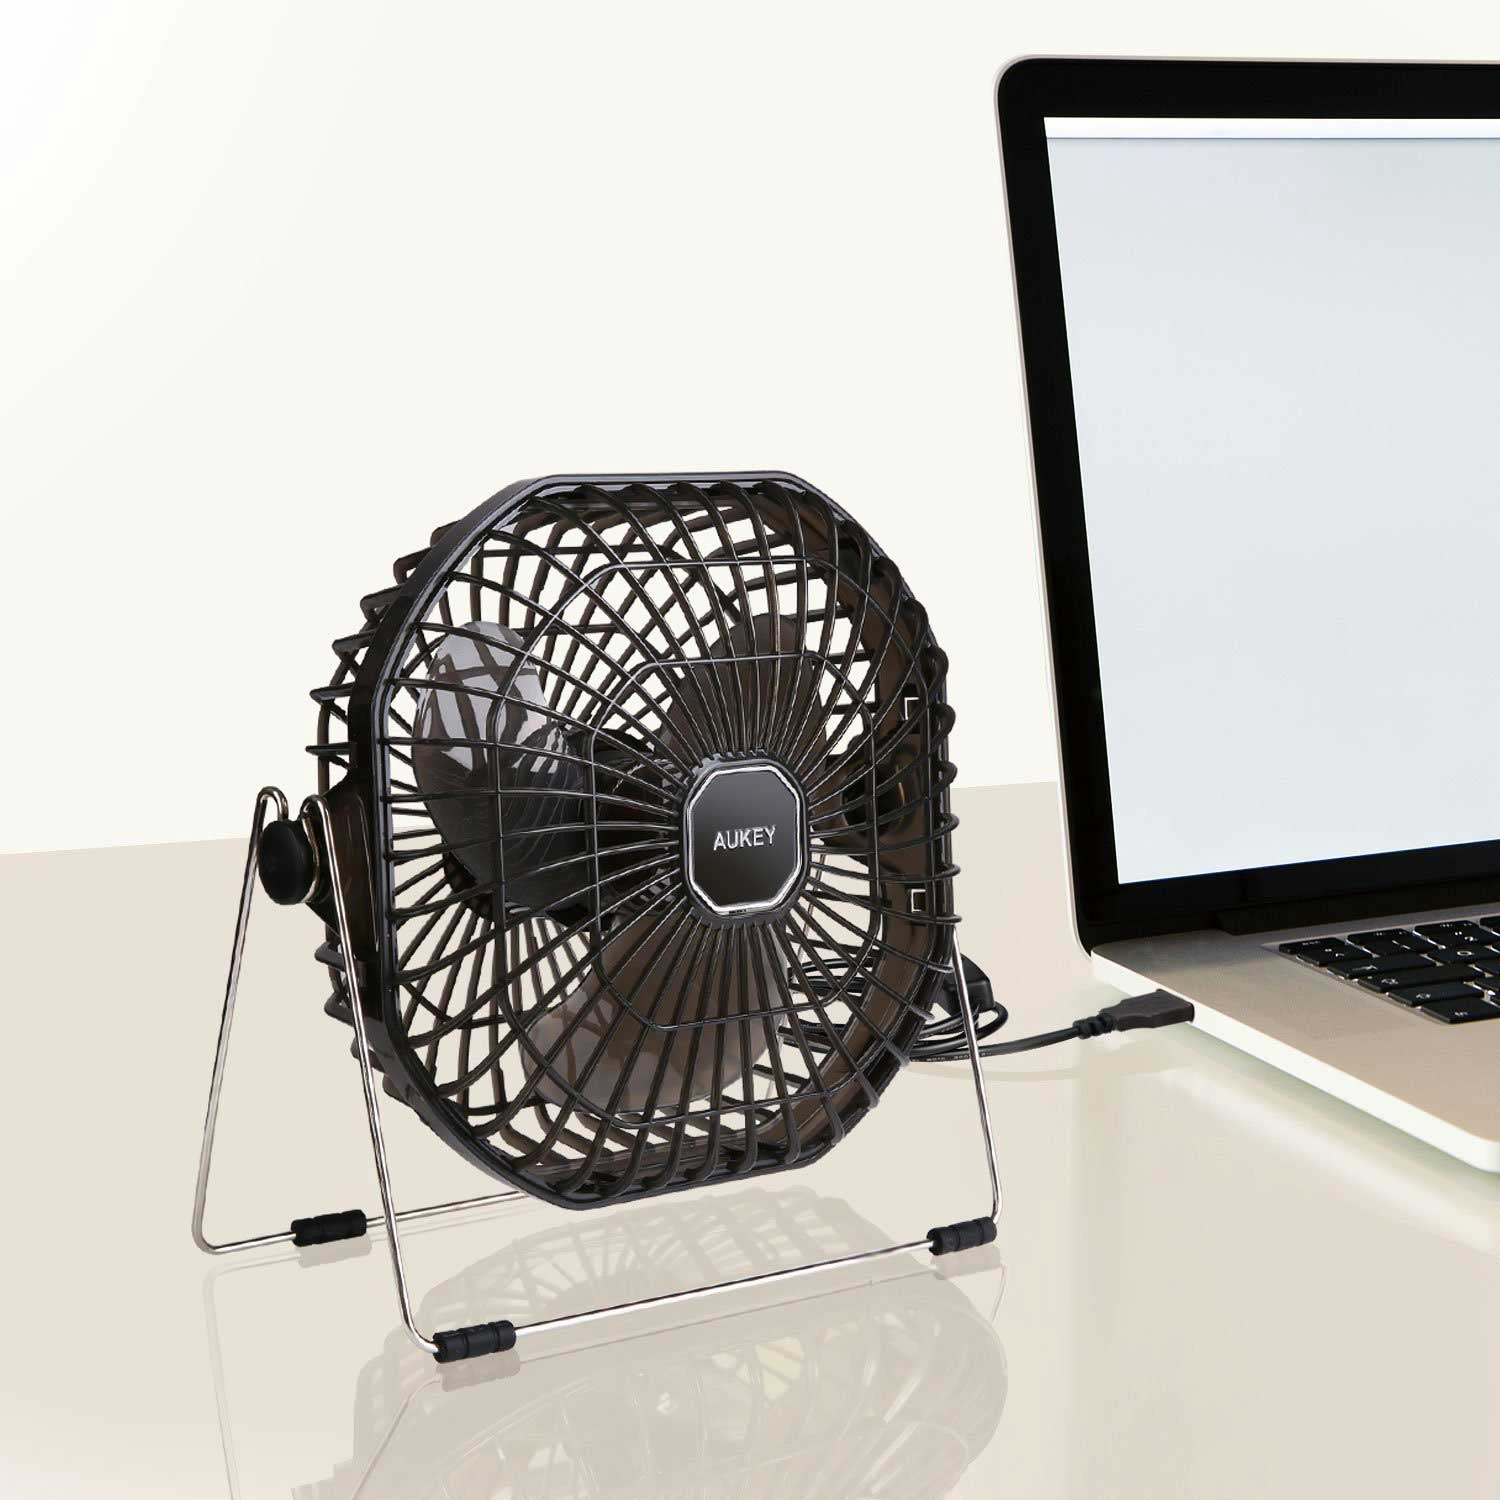 test du ventilateur usb de bureau ef d01 aukey. Black Bedroom Furniture Sets. Home Design Ideas